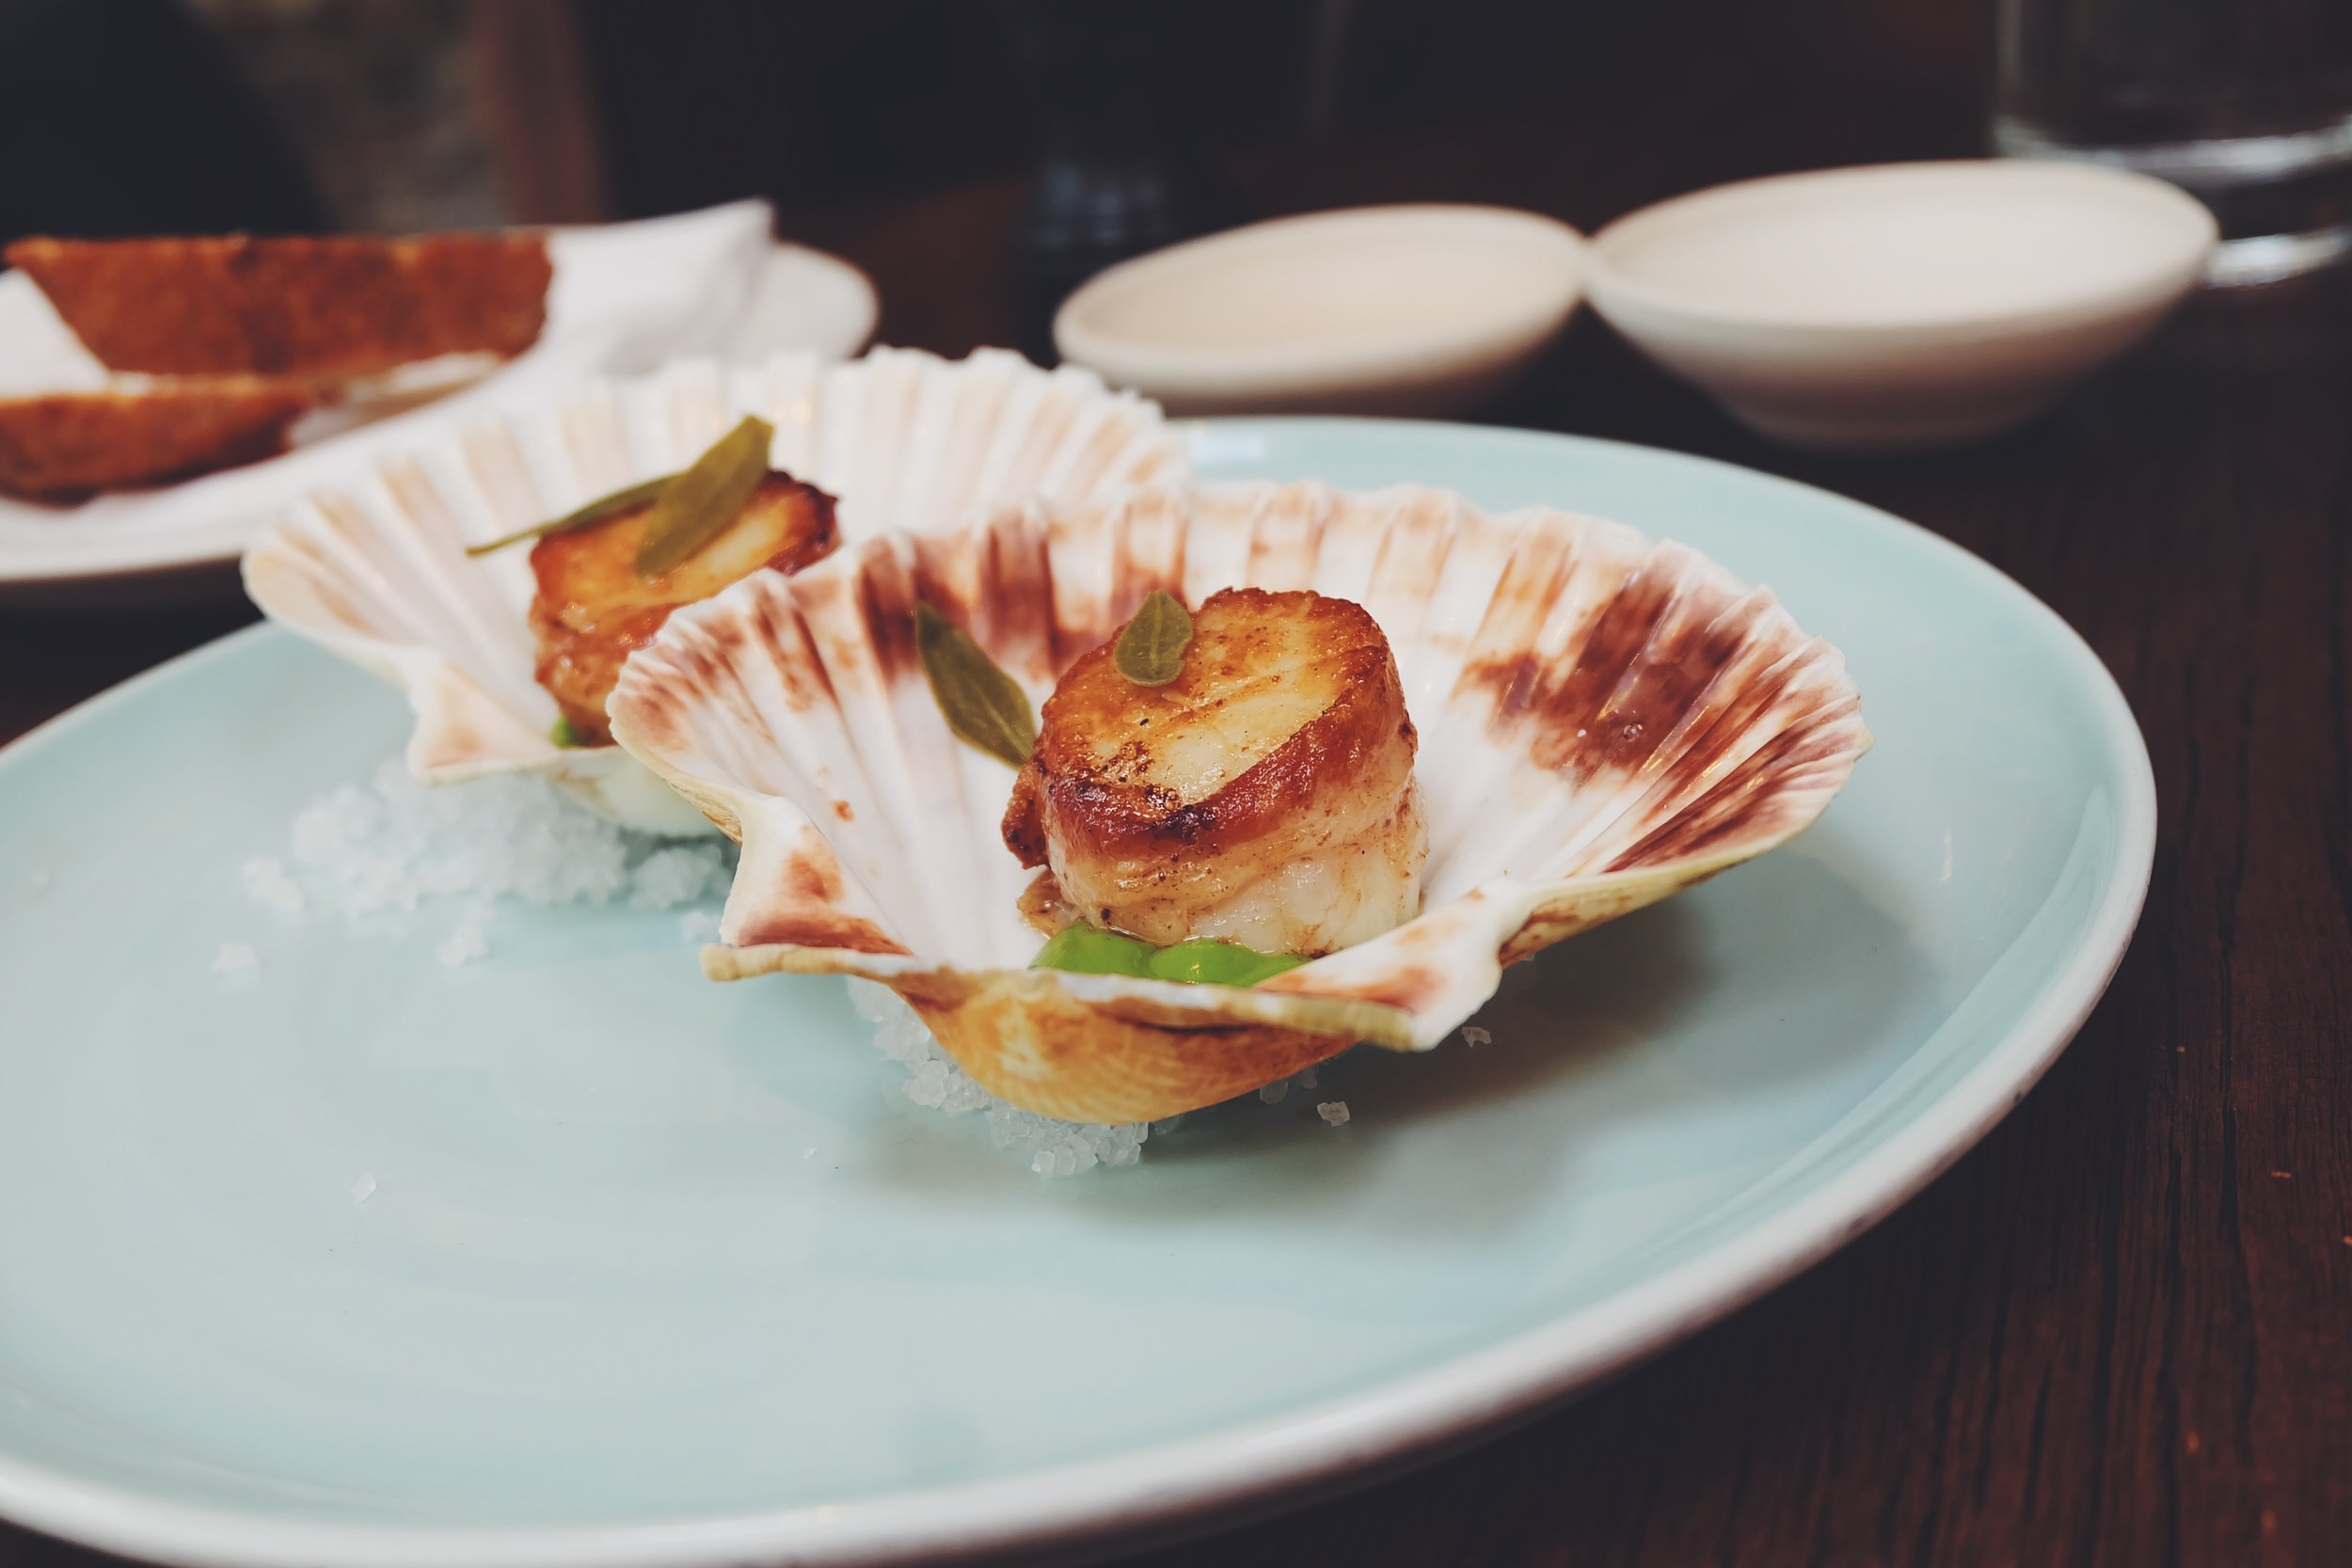 Roast orkney scallop wrapped in pancetta, courgette and garlic (£14)